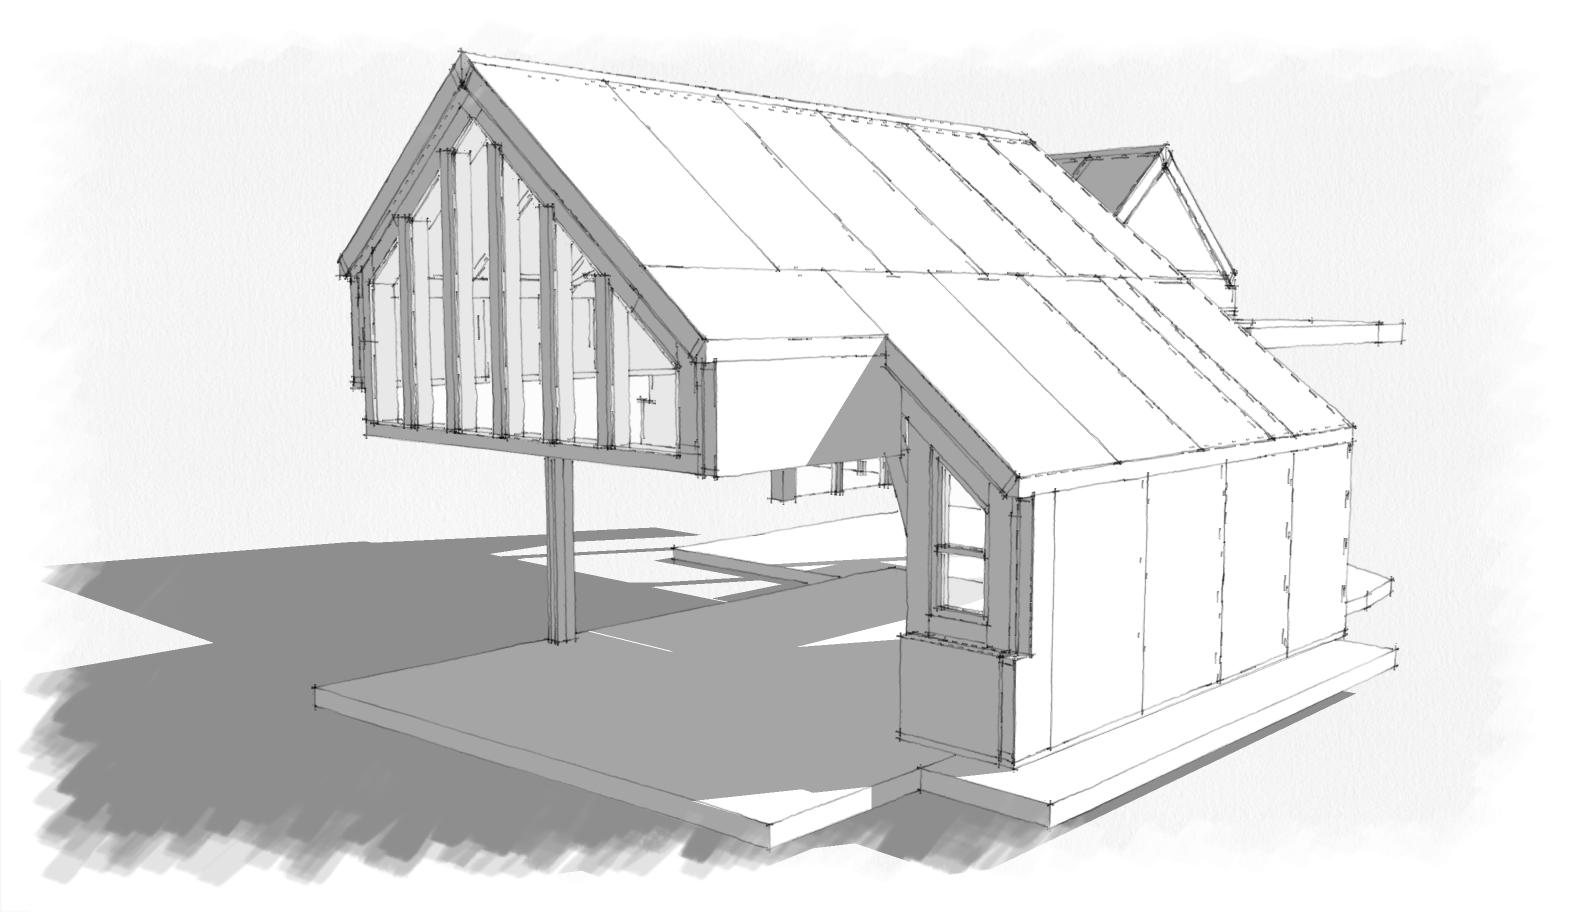 Padstow – Concept Drawings